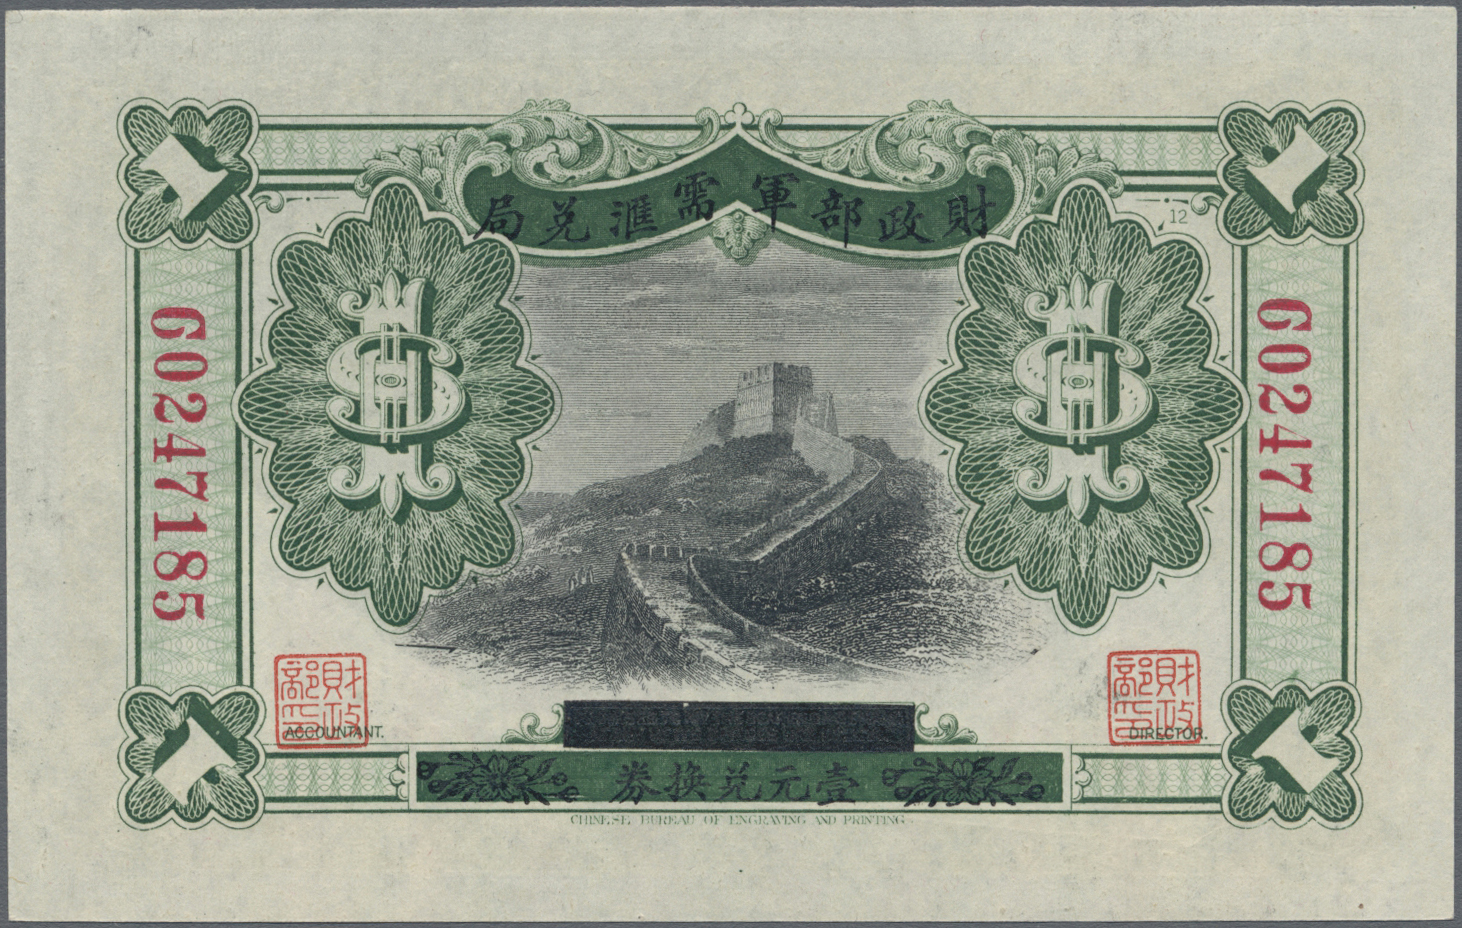 Lot 00124 - China | Banknoten  -  Auktionshaus Christoph Gärtner GmbH & Co. KG Sale #48 The Banknotes